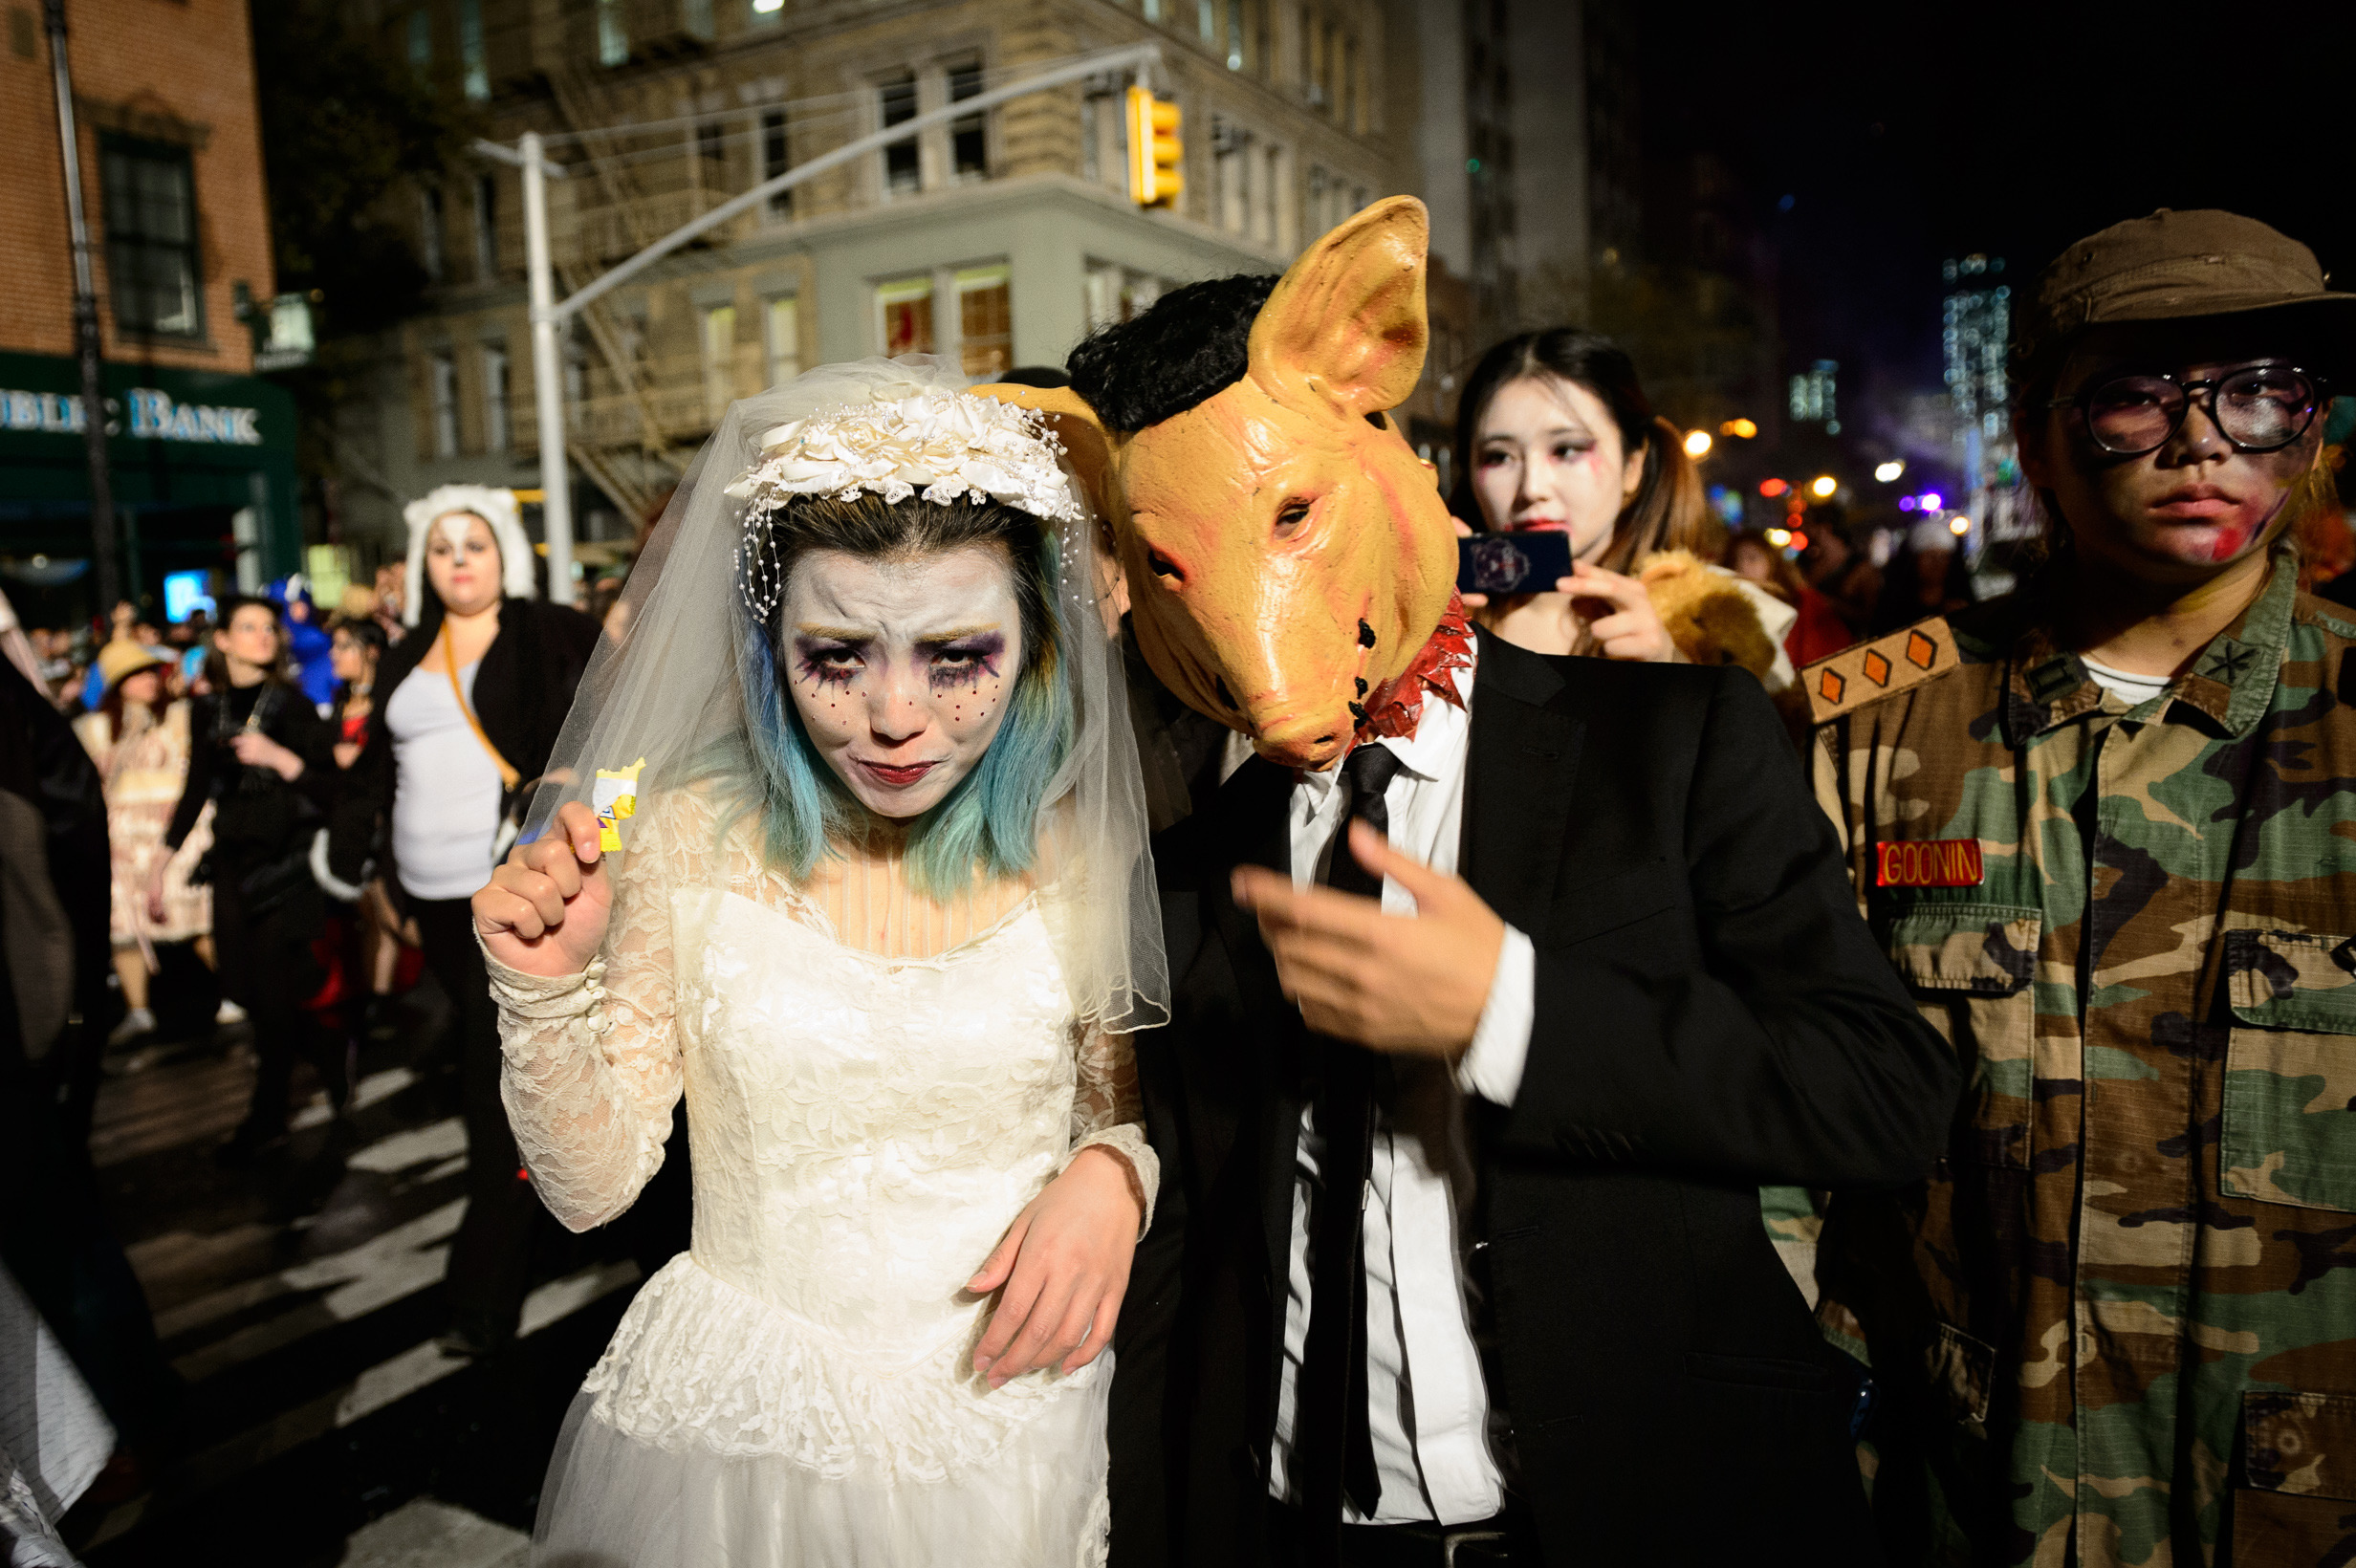 village halloween parade in nyc 2017 guide including the route map village halloween parade in nyc 2017 guide including the route map - Dallas Halloween Parade